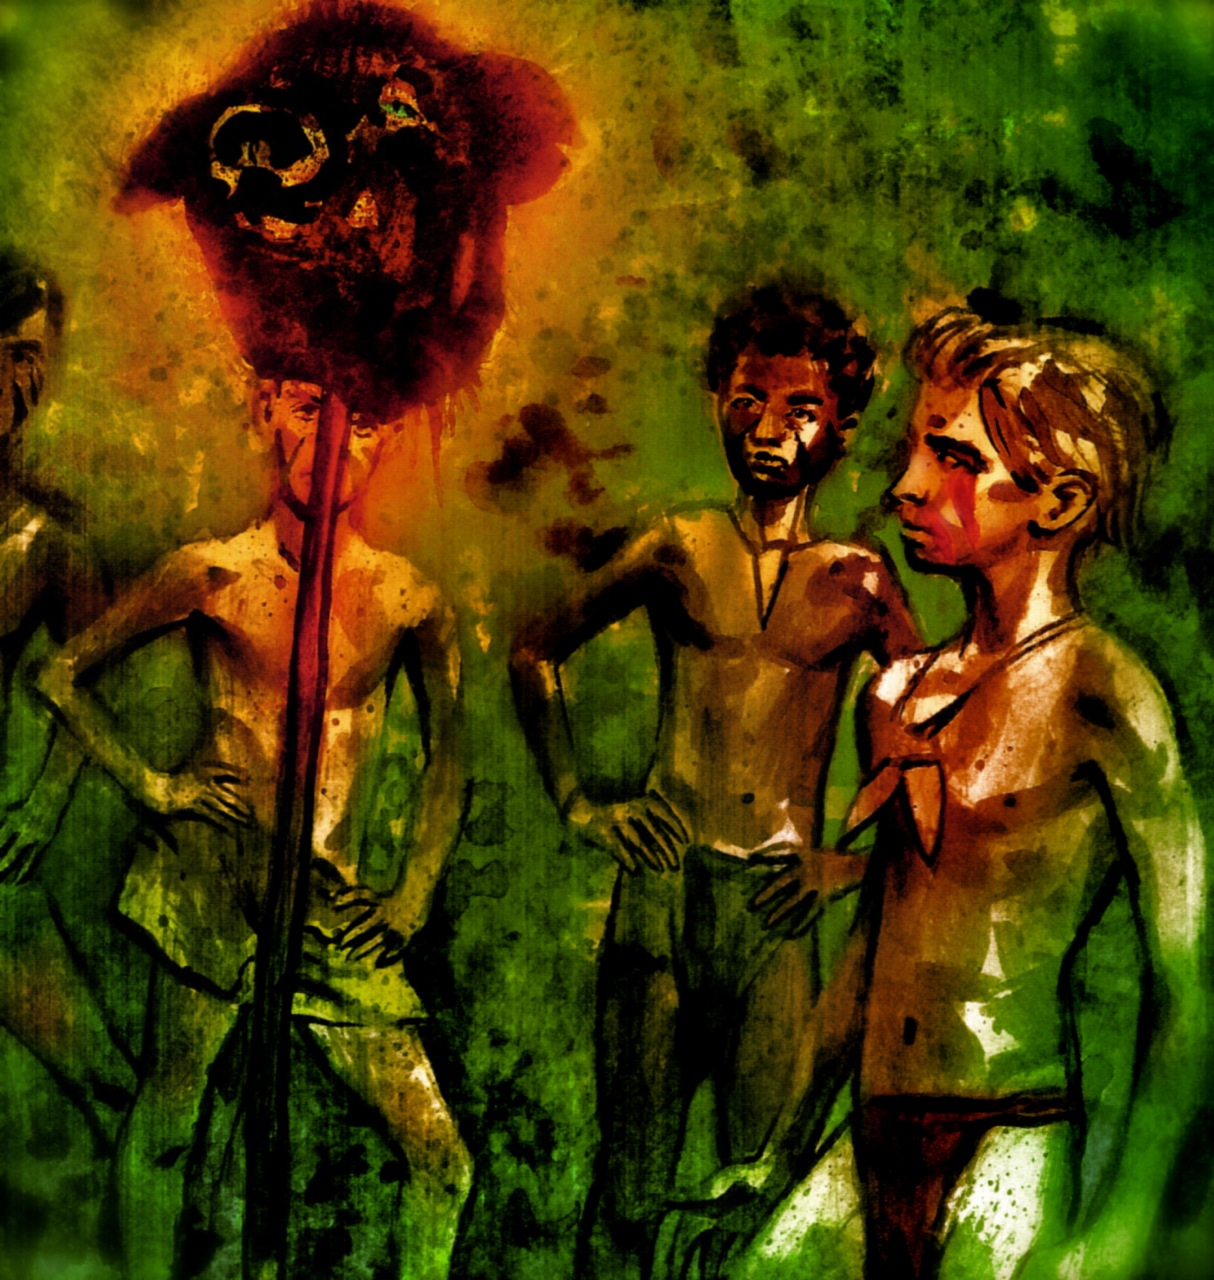 more notes on characterization in lord of the flies by william sundry